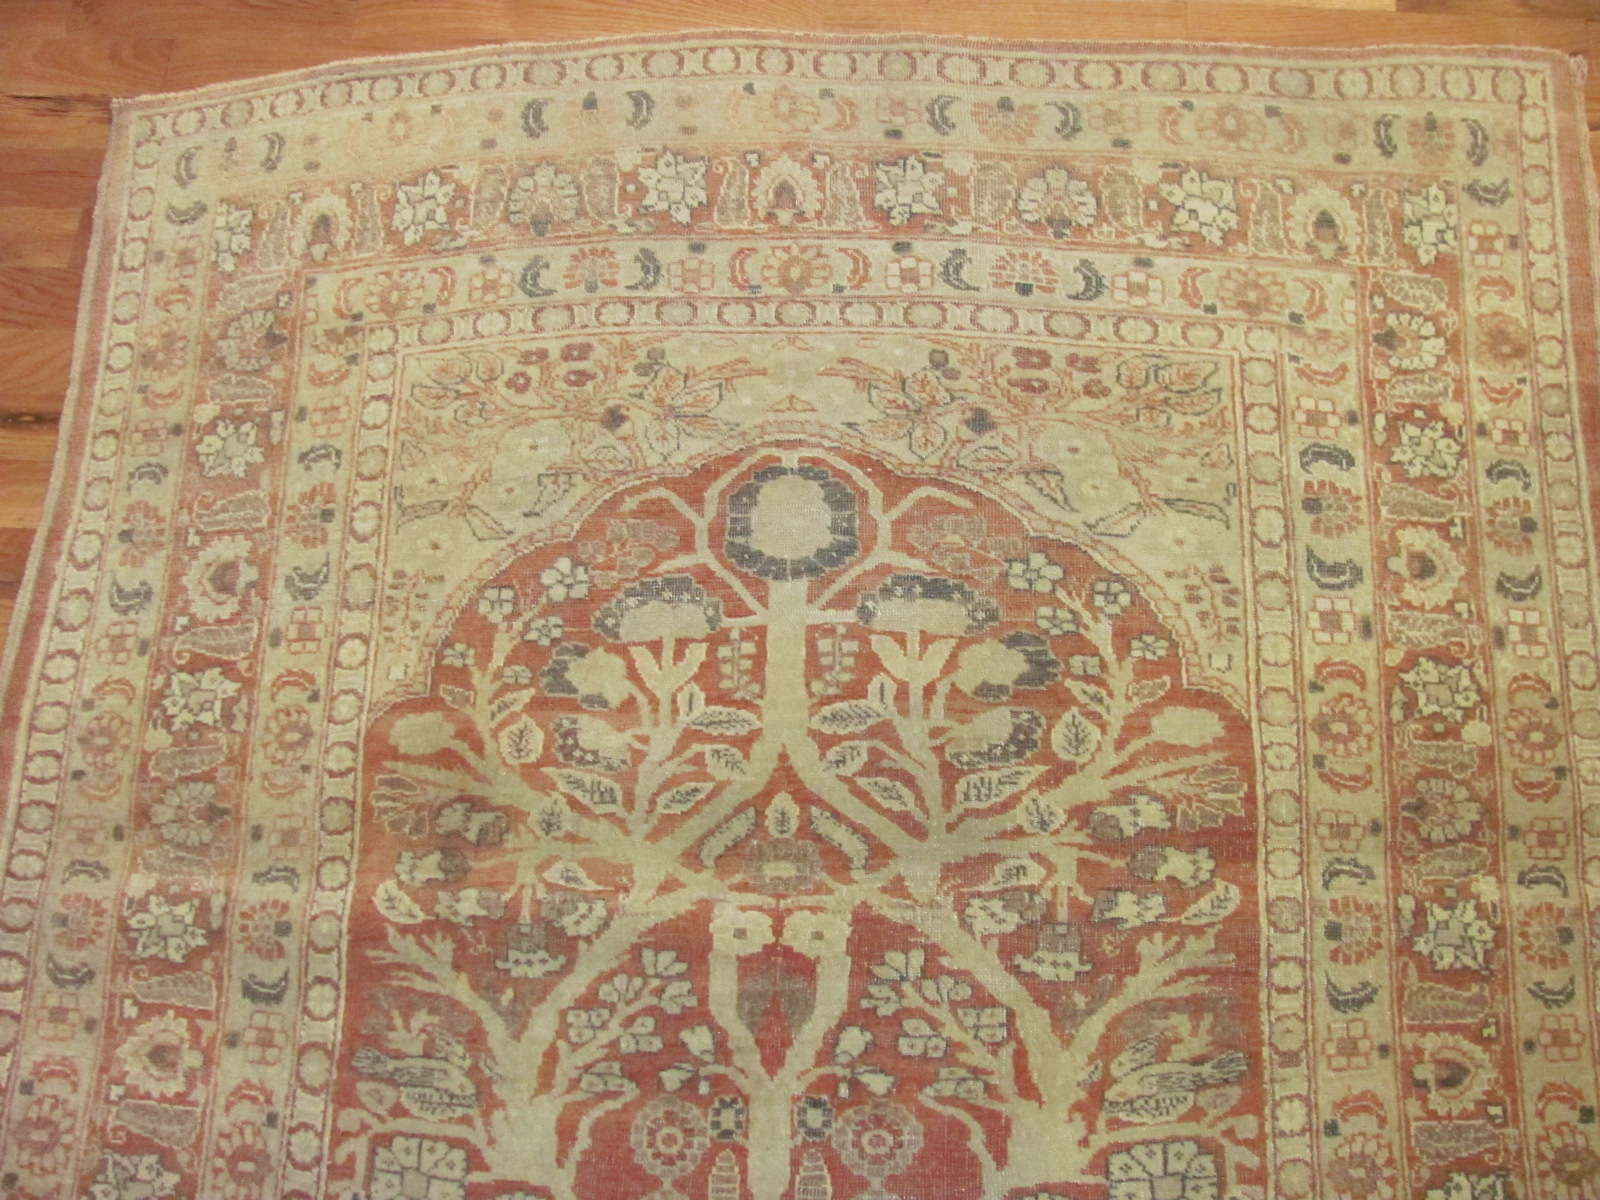 24668 antique persian tabriz prayer rug 4 x 4,8 -1